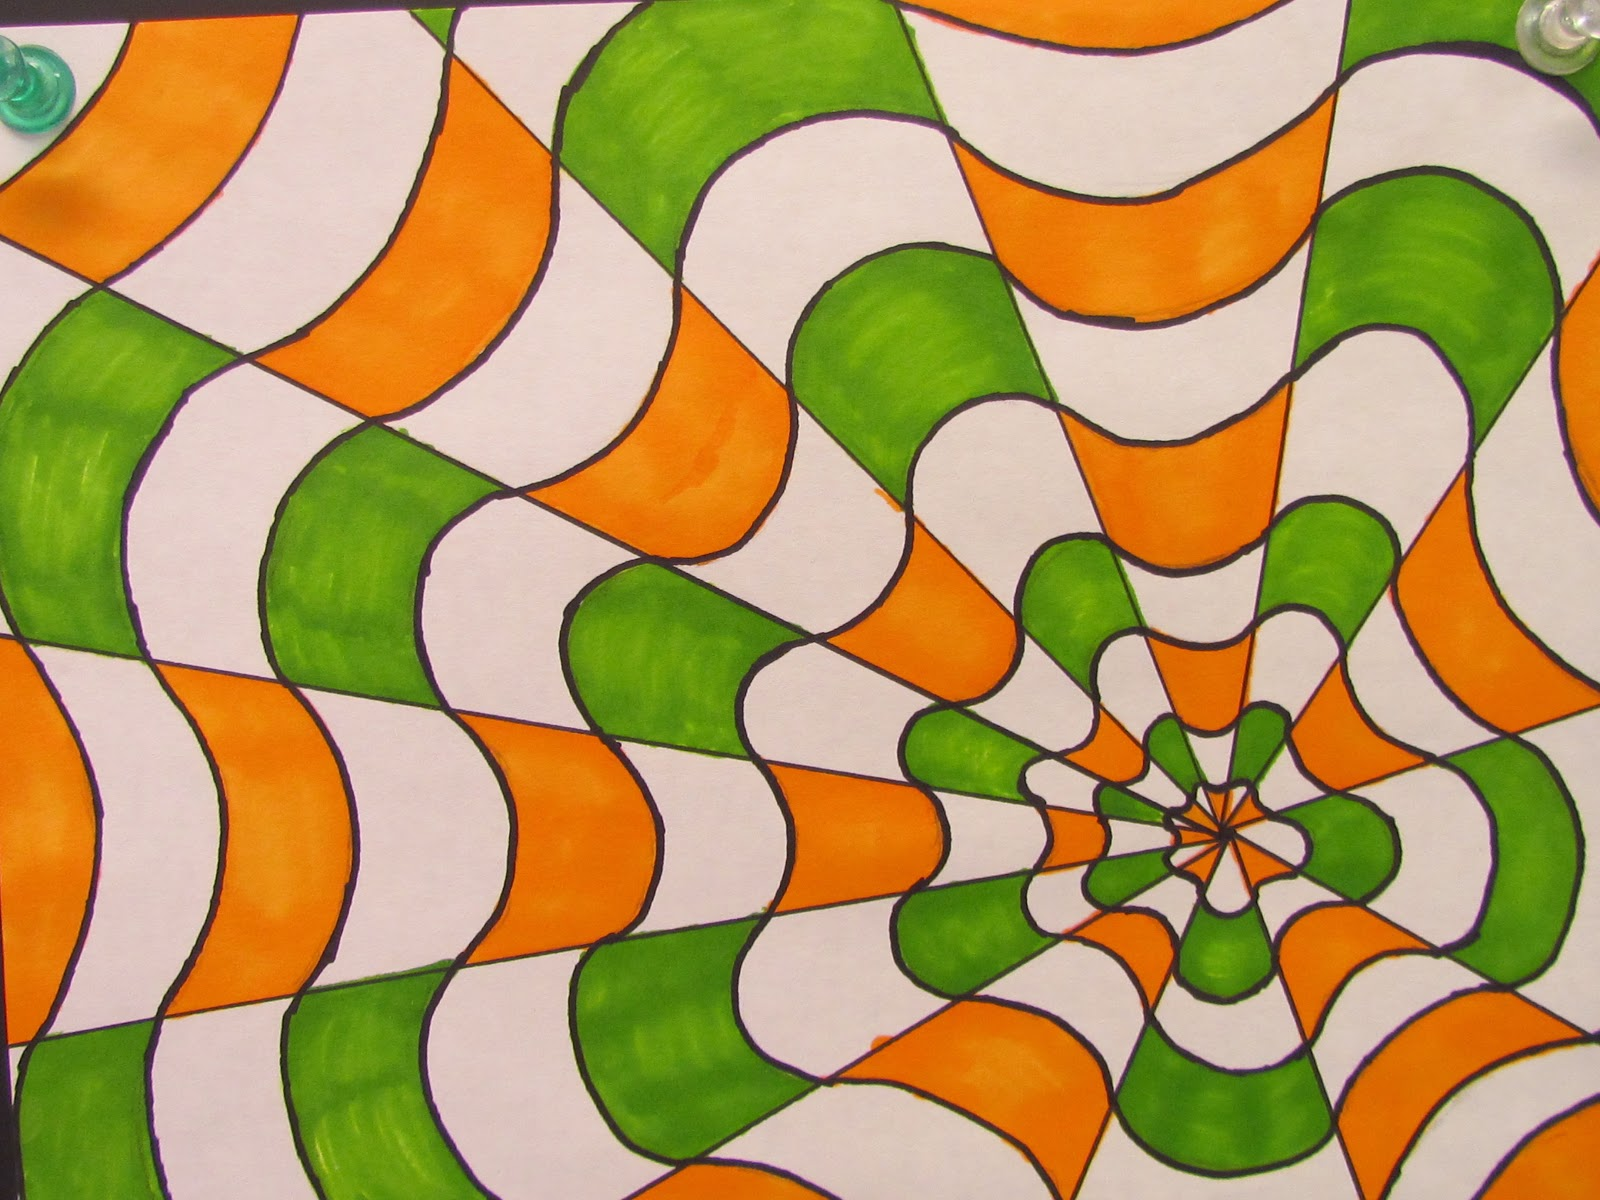 optical illusion illusions lesson amazing draw drawing hand paper fickert adventures miss today introducing started pencils textas students skipping trouble